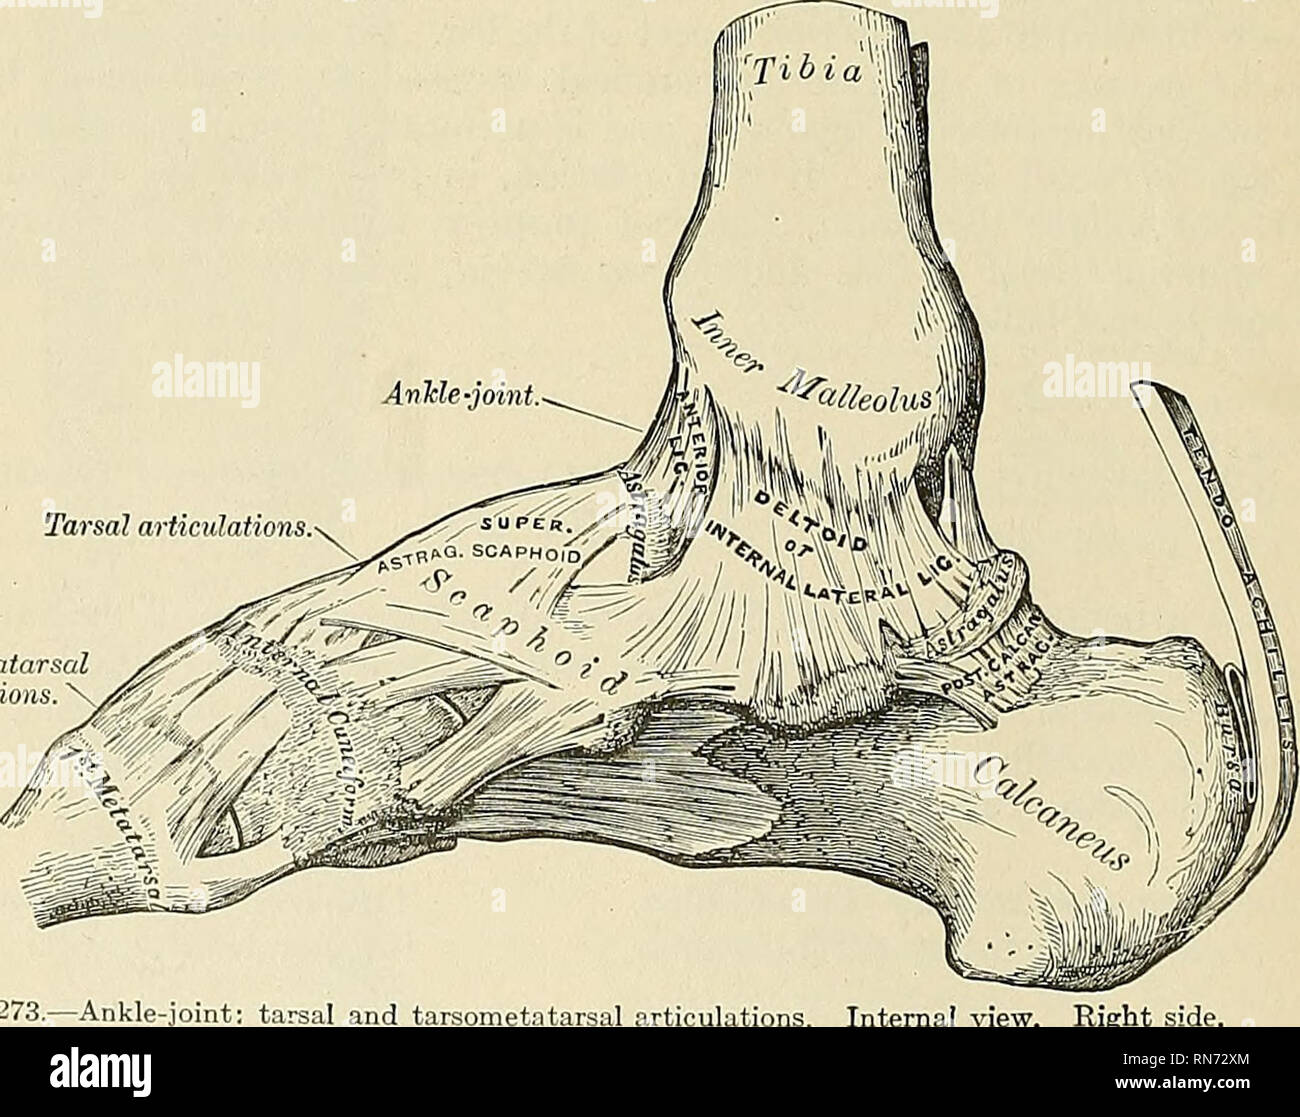 . Anatomy, descriptive and applied. Anatomy. 342 THE ARTICULATIONS, OB JOINTS The posterior inferior ligament (ligamentum malleoli lateralis posterius) (Fig. 276), smaller than the preceding, is disposed in a similar manner on the posterior surface of the articulation. The inferior transverse ligament lies under cover of the posterior ligament, and is a strong, thick band of yellowish fibres which passes transversely across the back of the joint, from the external malleolus to the posterior border of the articular surface of the tibia, almost as far as its malleolar process. This ligament proj - Stock Image